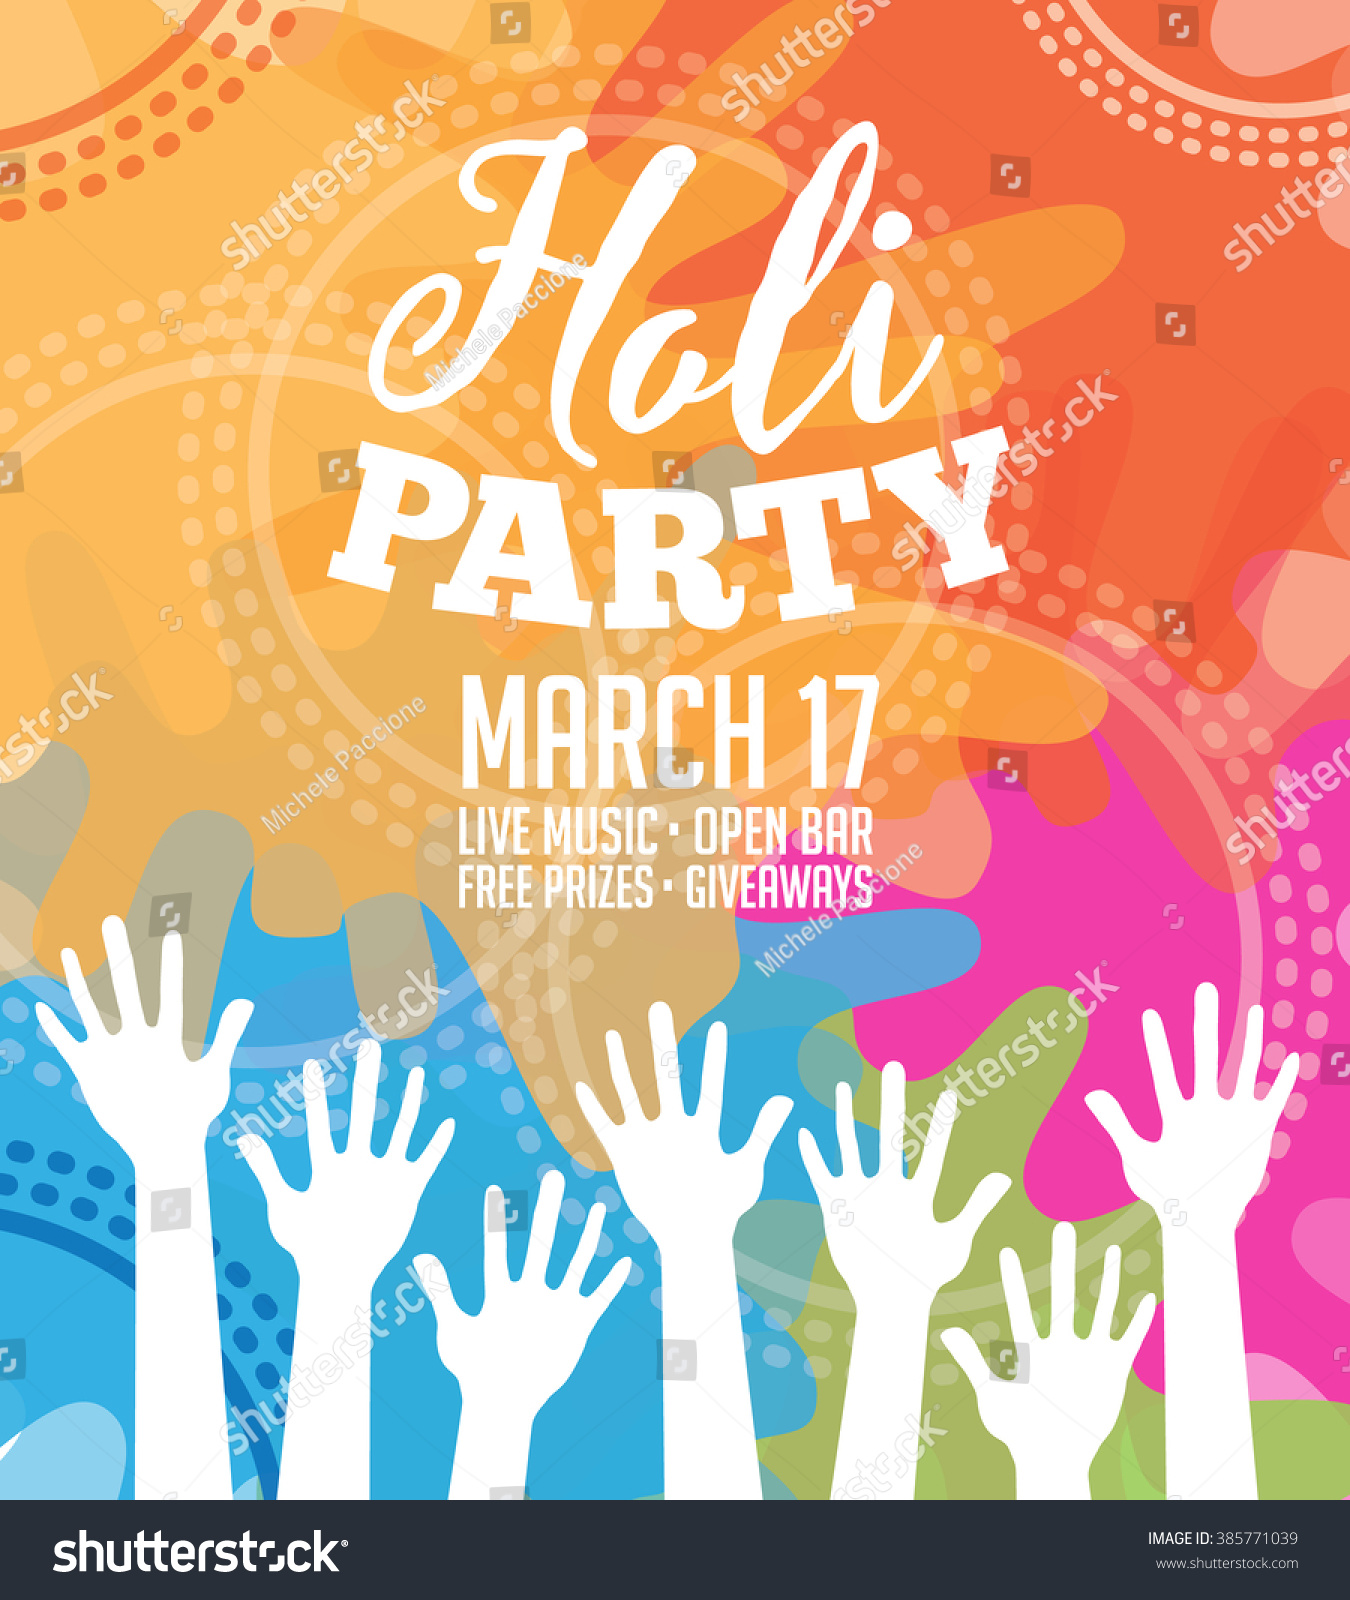 Holi Party Invitation Poster Greeting Card Stock Photo (Photo ...